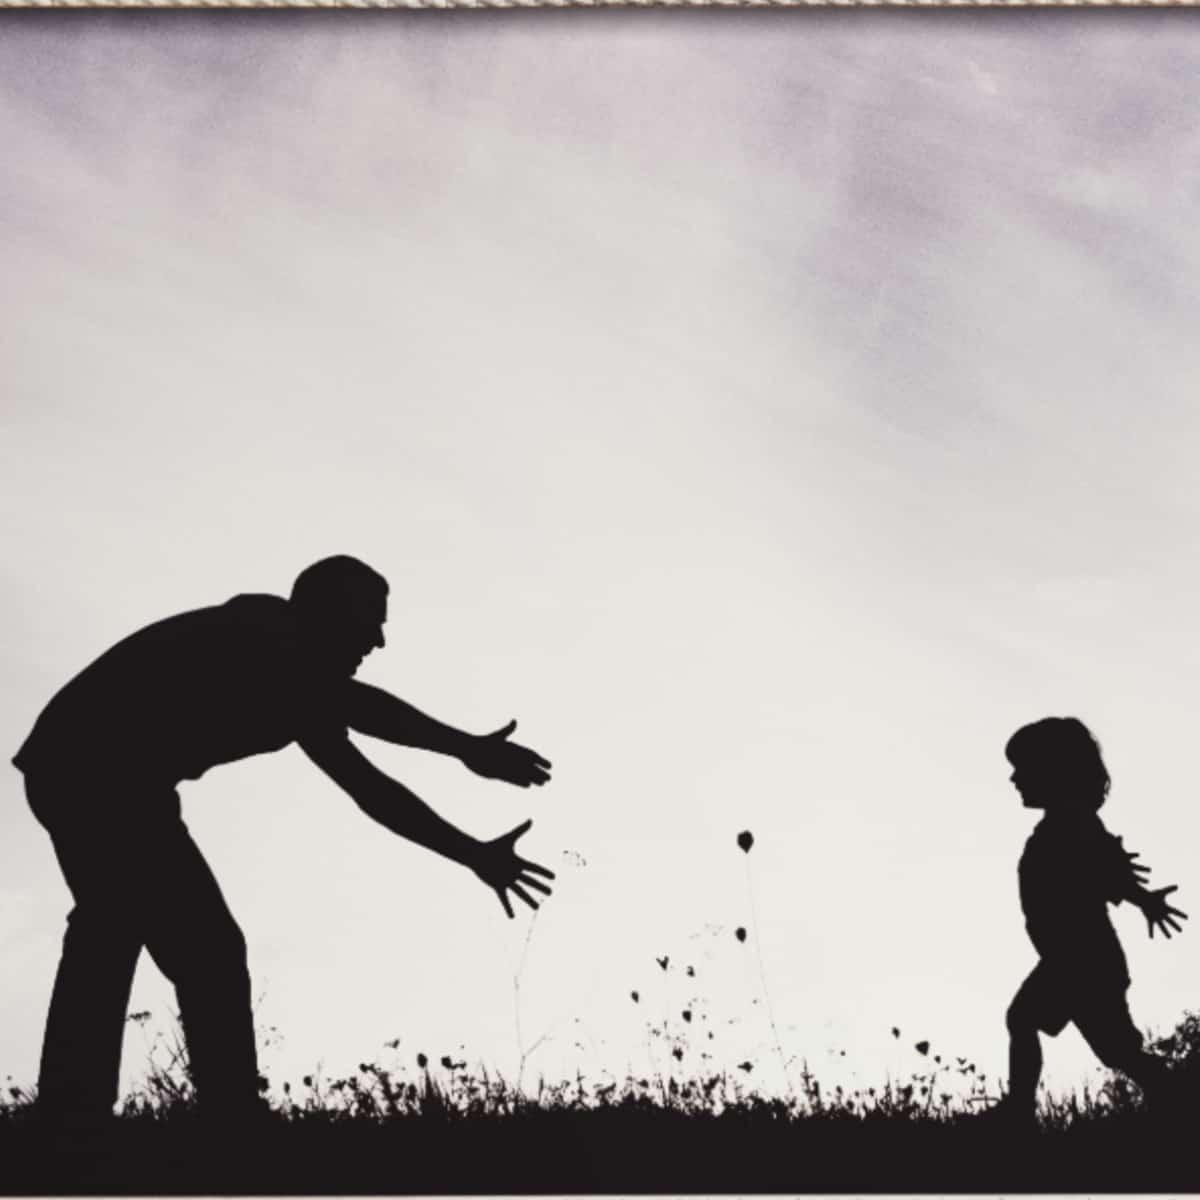 Black and white silhouette image of a father and child facing each other. The Father is bending down with his arms outstretched towards his child.